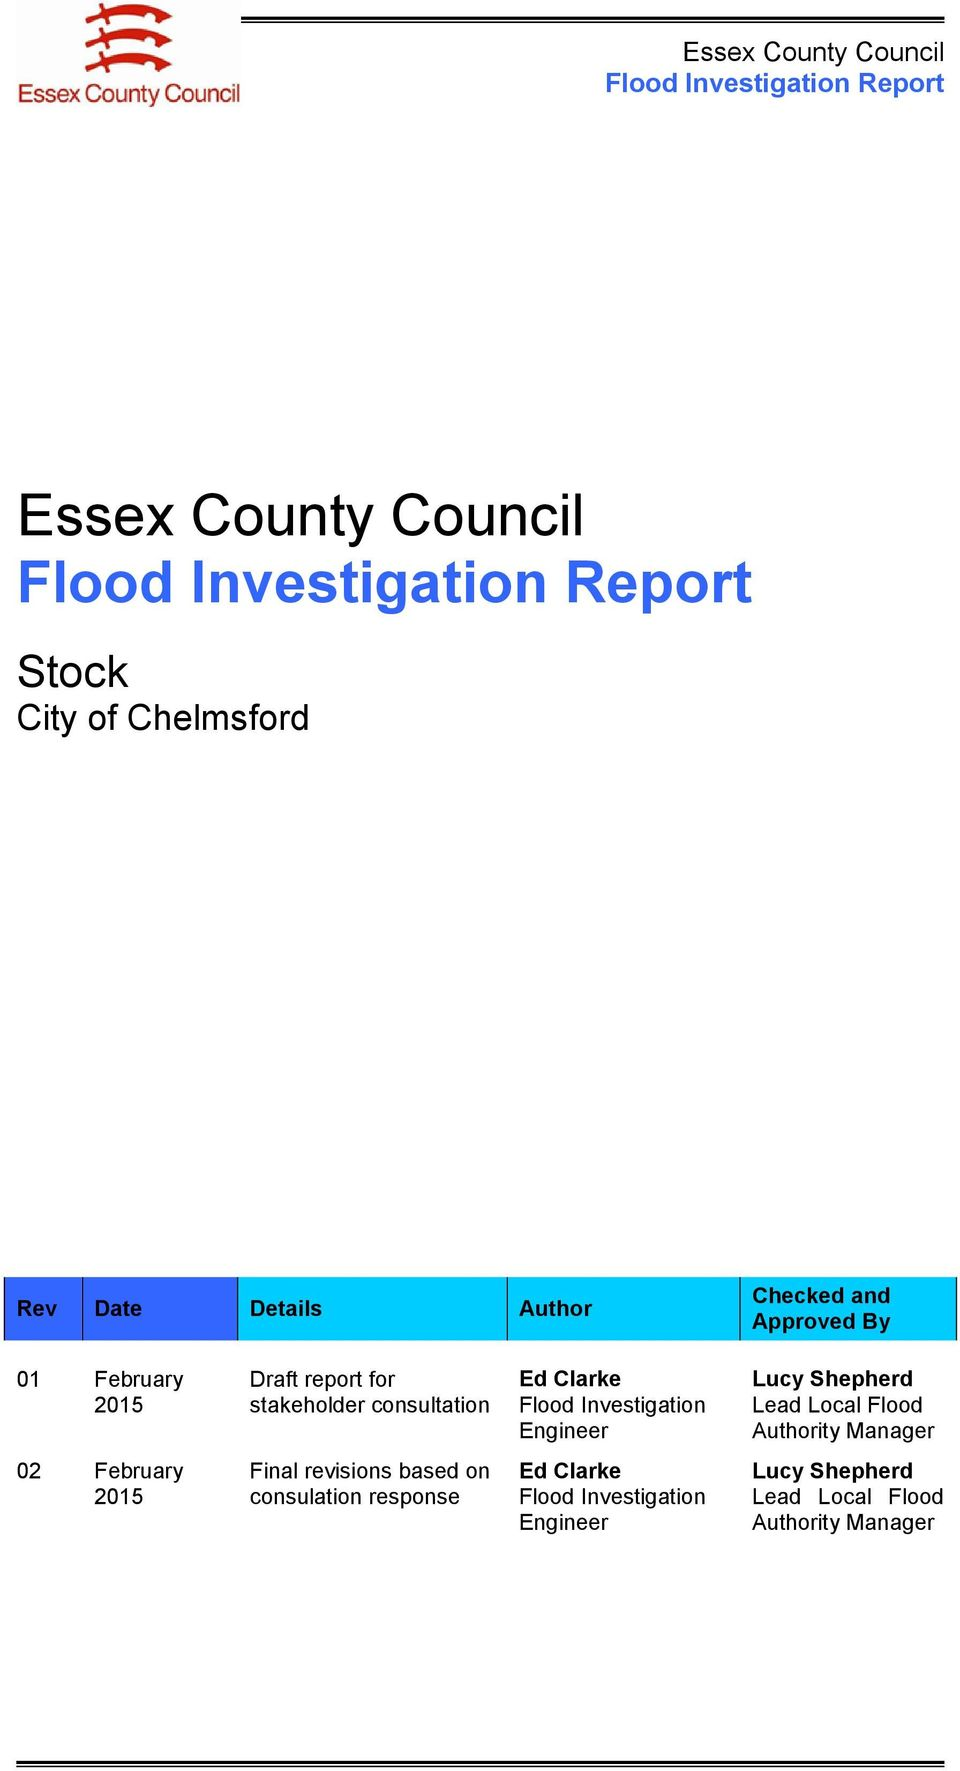 Lucy Shepherd Lead Local Flood Authority Manager 02 February 2015 Final revisions based on